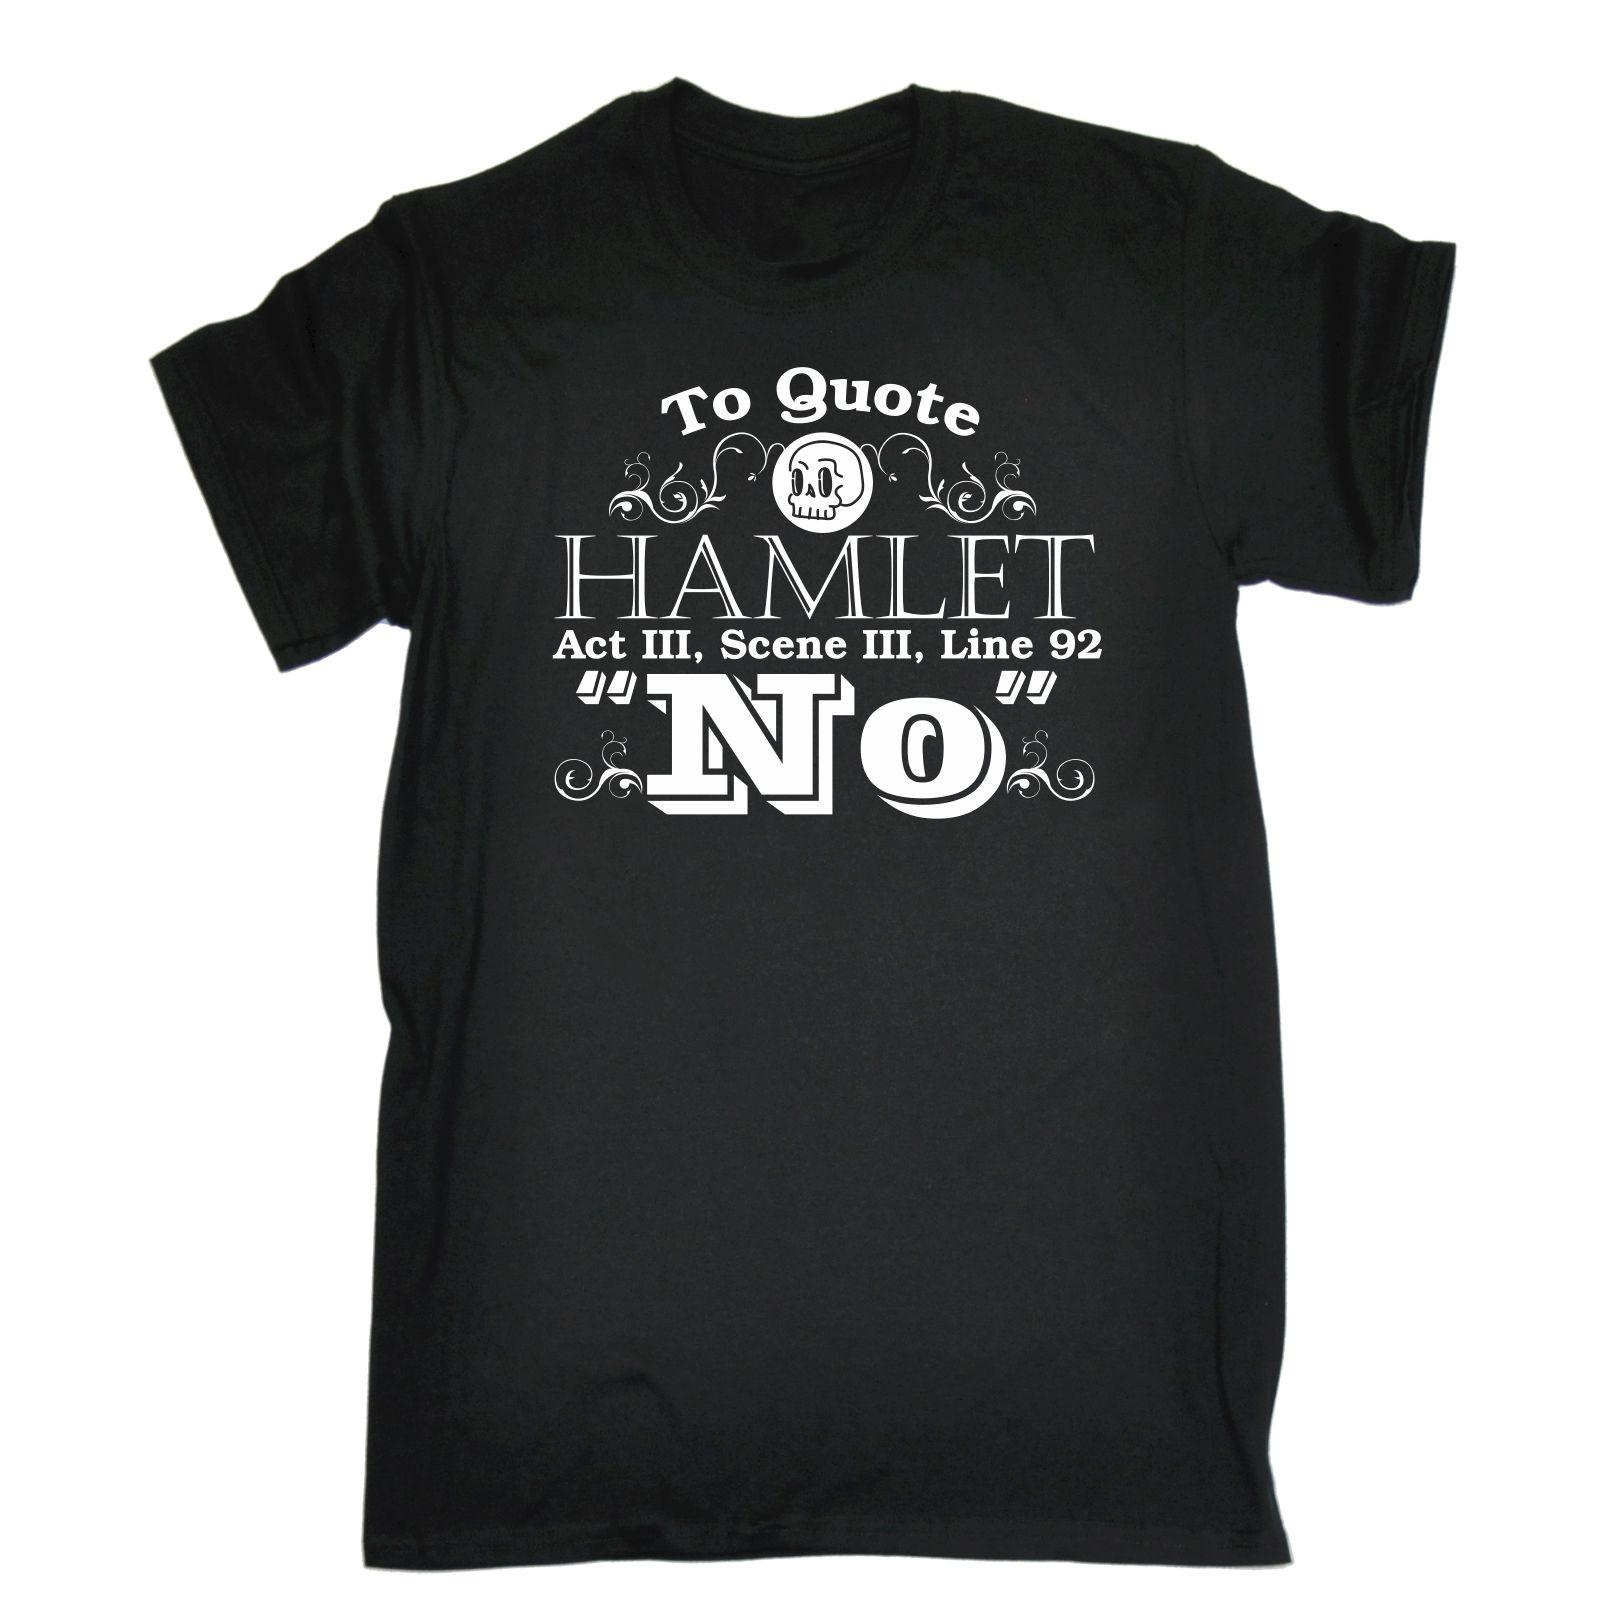 To Quote Hamlet T Shirt Tee Shakespeare Clever Funny Birthday Gift Present Him Black Style Summer Short Sleeve Cotton Sites Quirky Shirts From